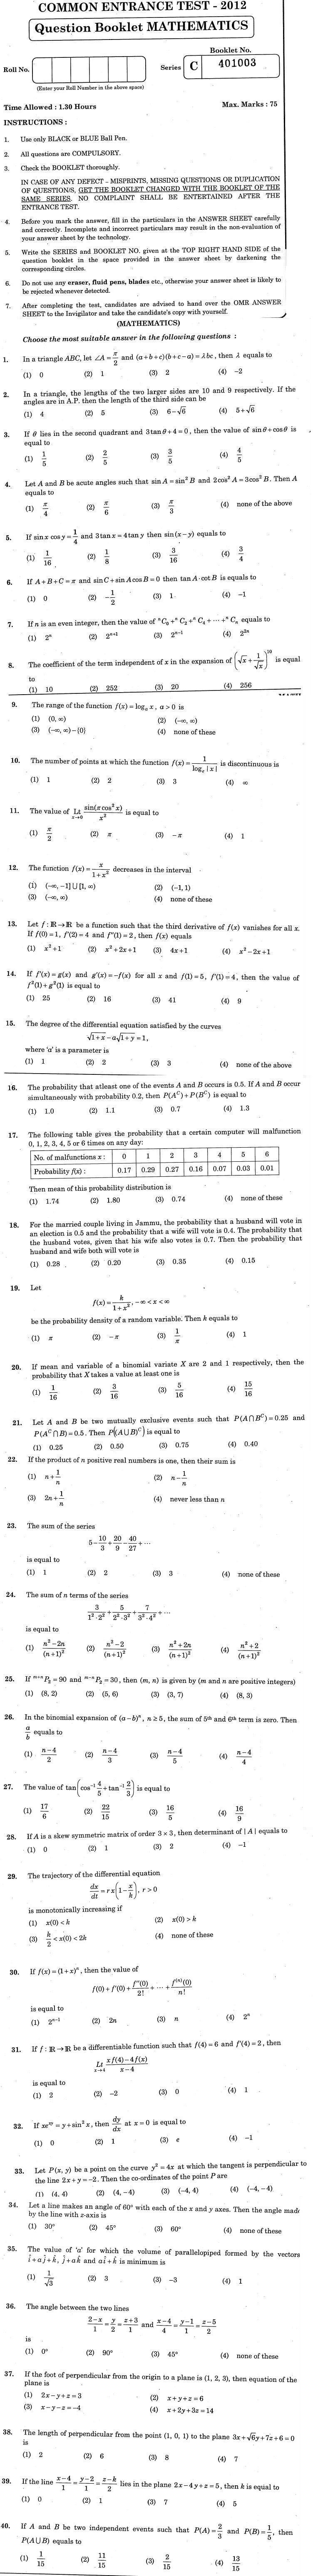 J&K CET 2012 Maths Question Paper